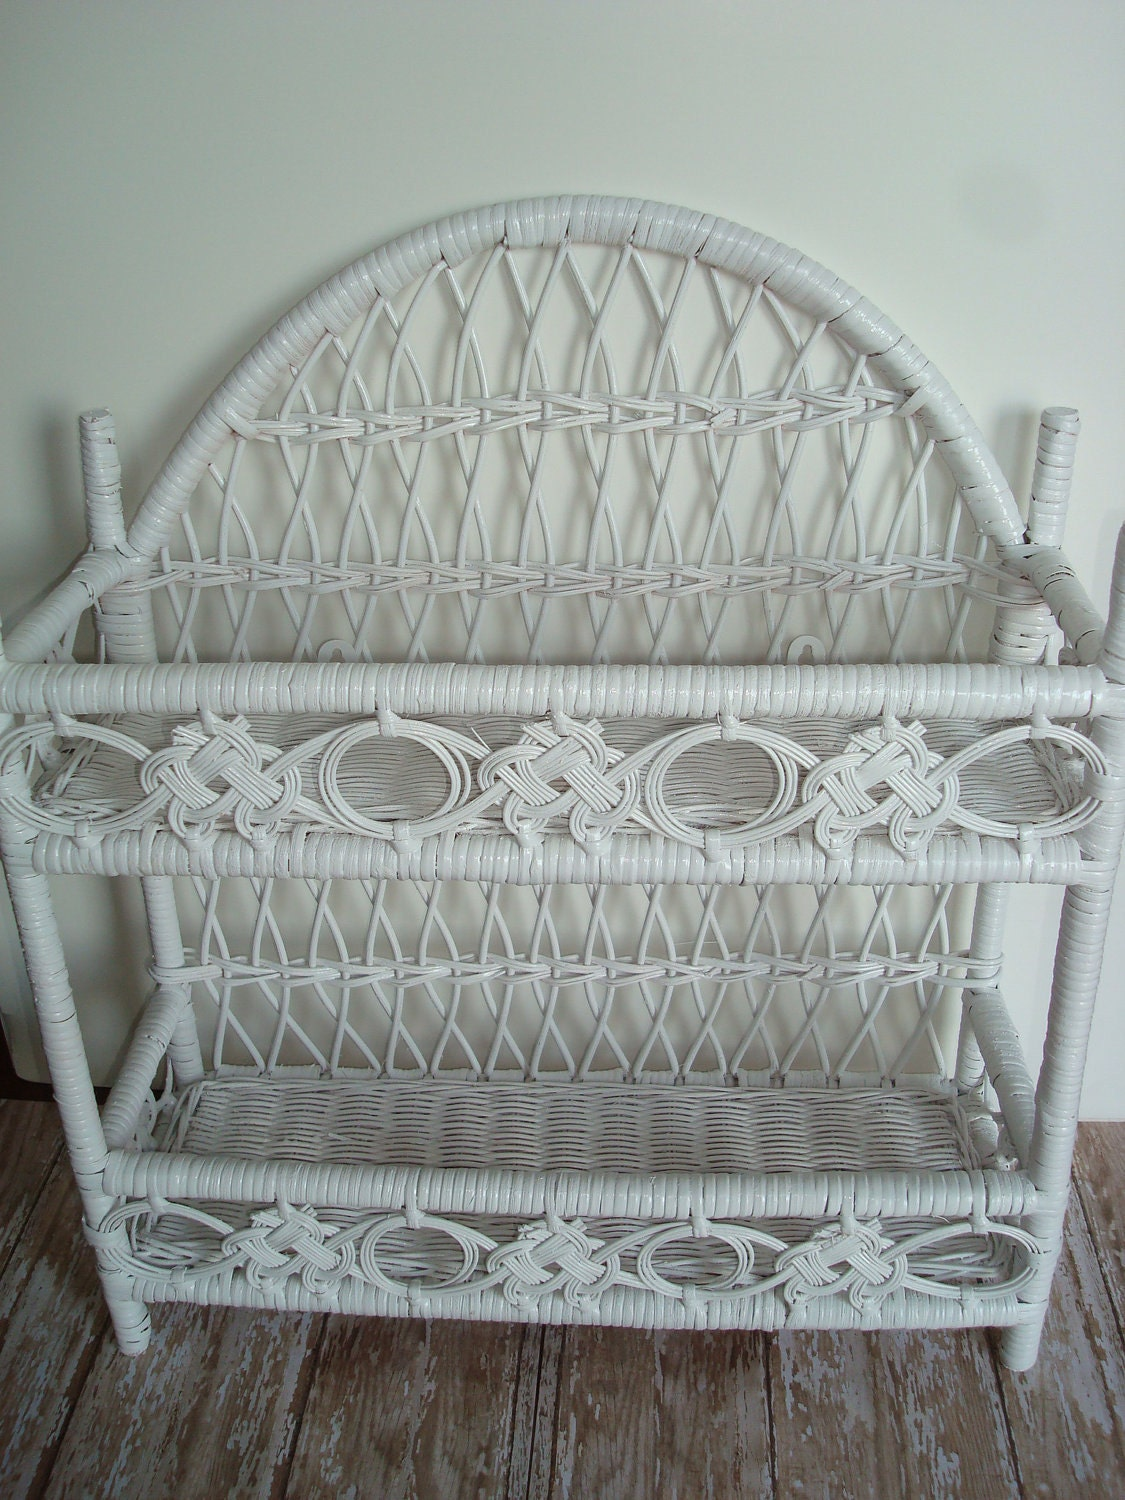 Vintage White Wicker And Rattan Wall Shelf Tabletop Shelf So